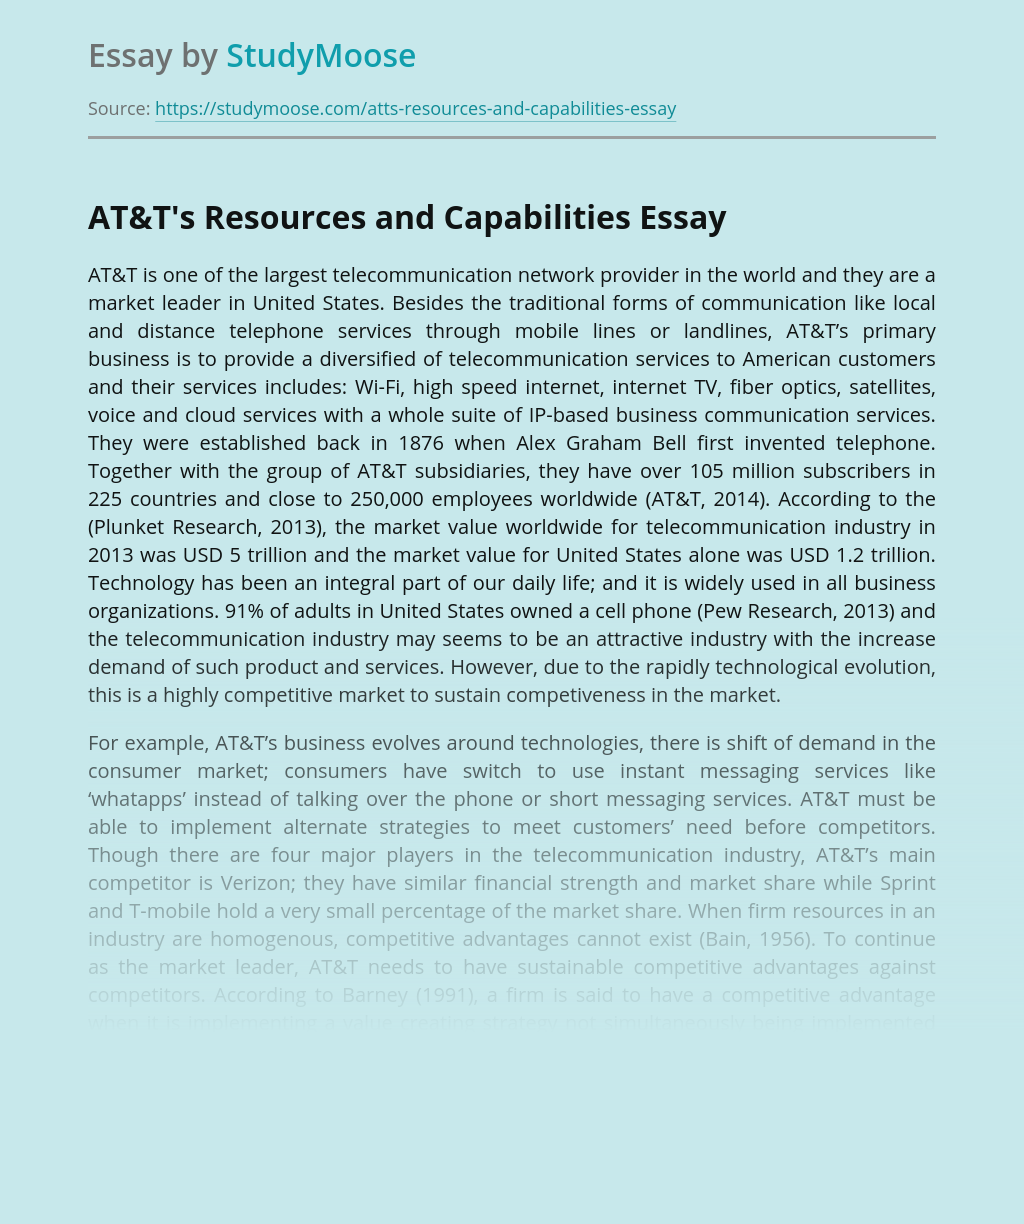 AT&T's Resources and Capabilities